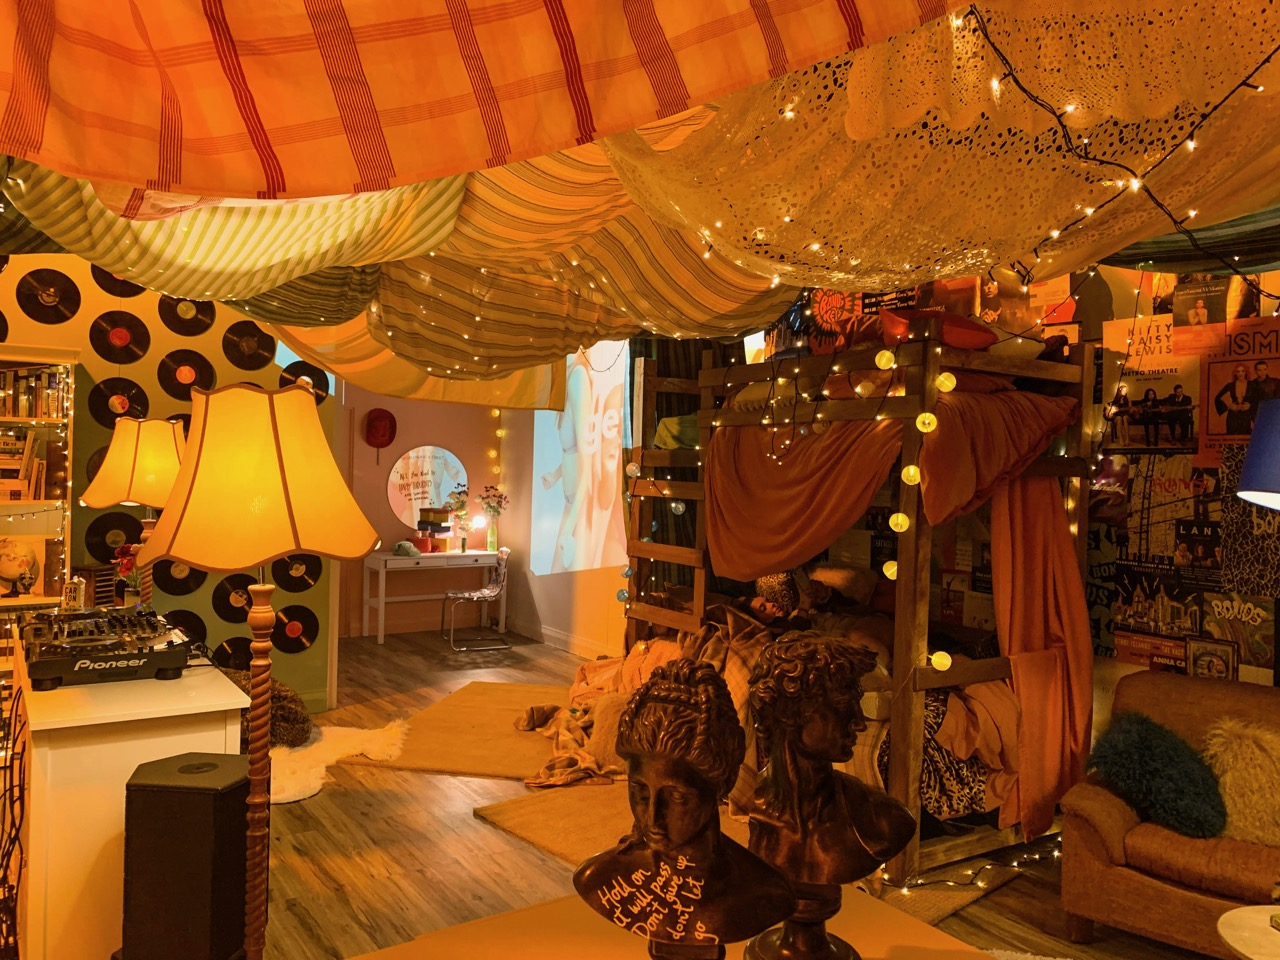 Bonds launches 'Bonds Bedrooms' consumer activation at Splendour in the Grass via Taboo